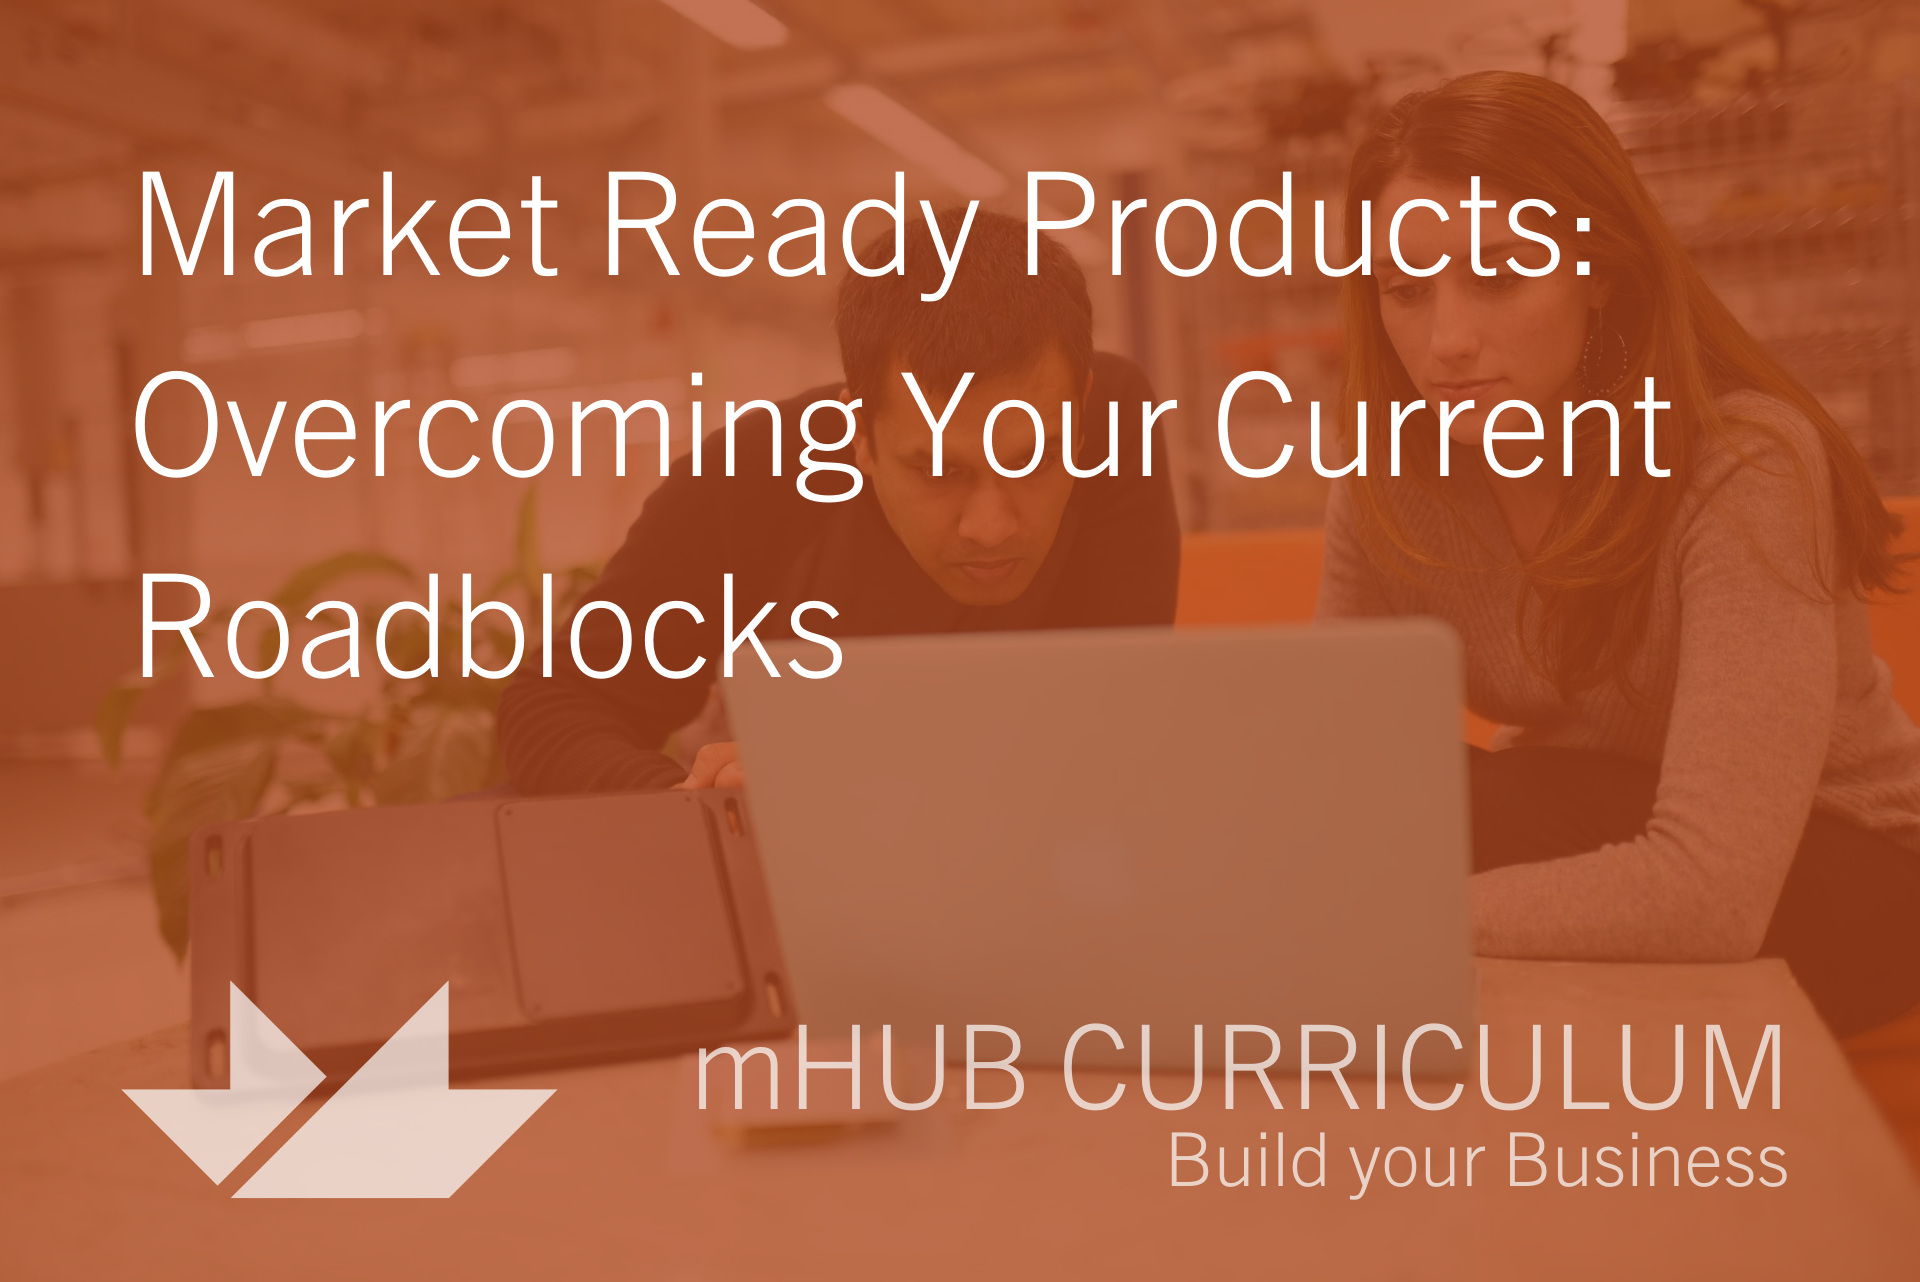 Market Ready Products: Overcoming Your Current Roadblocks